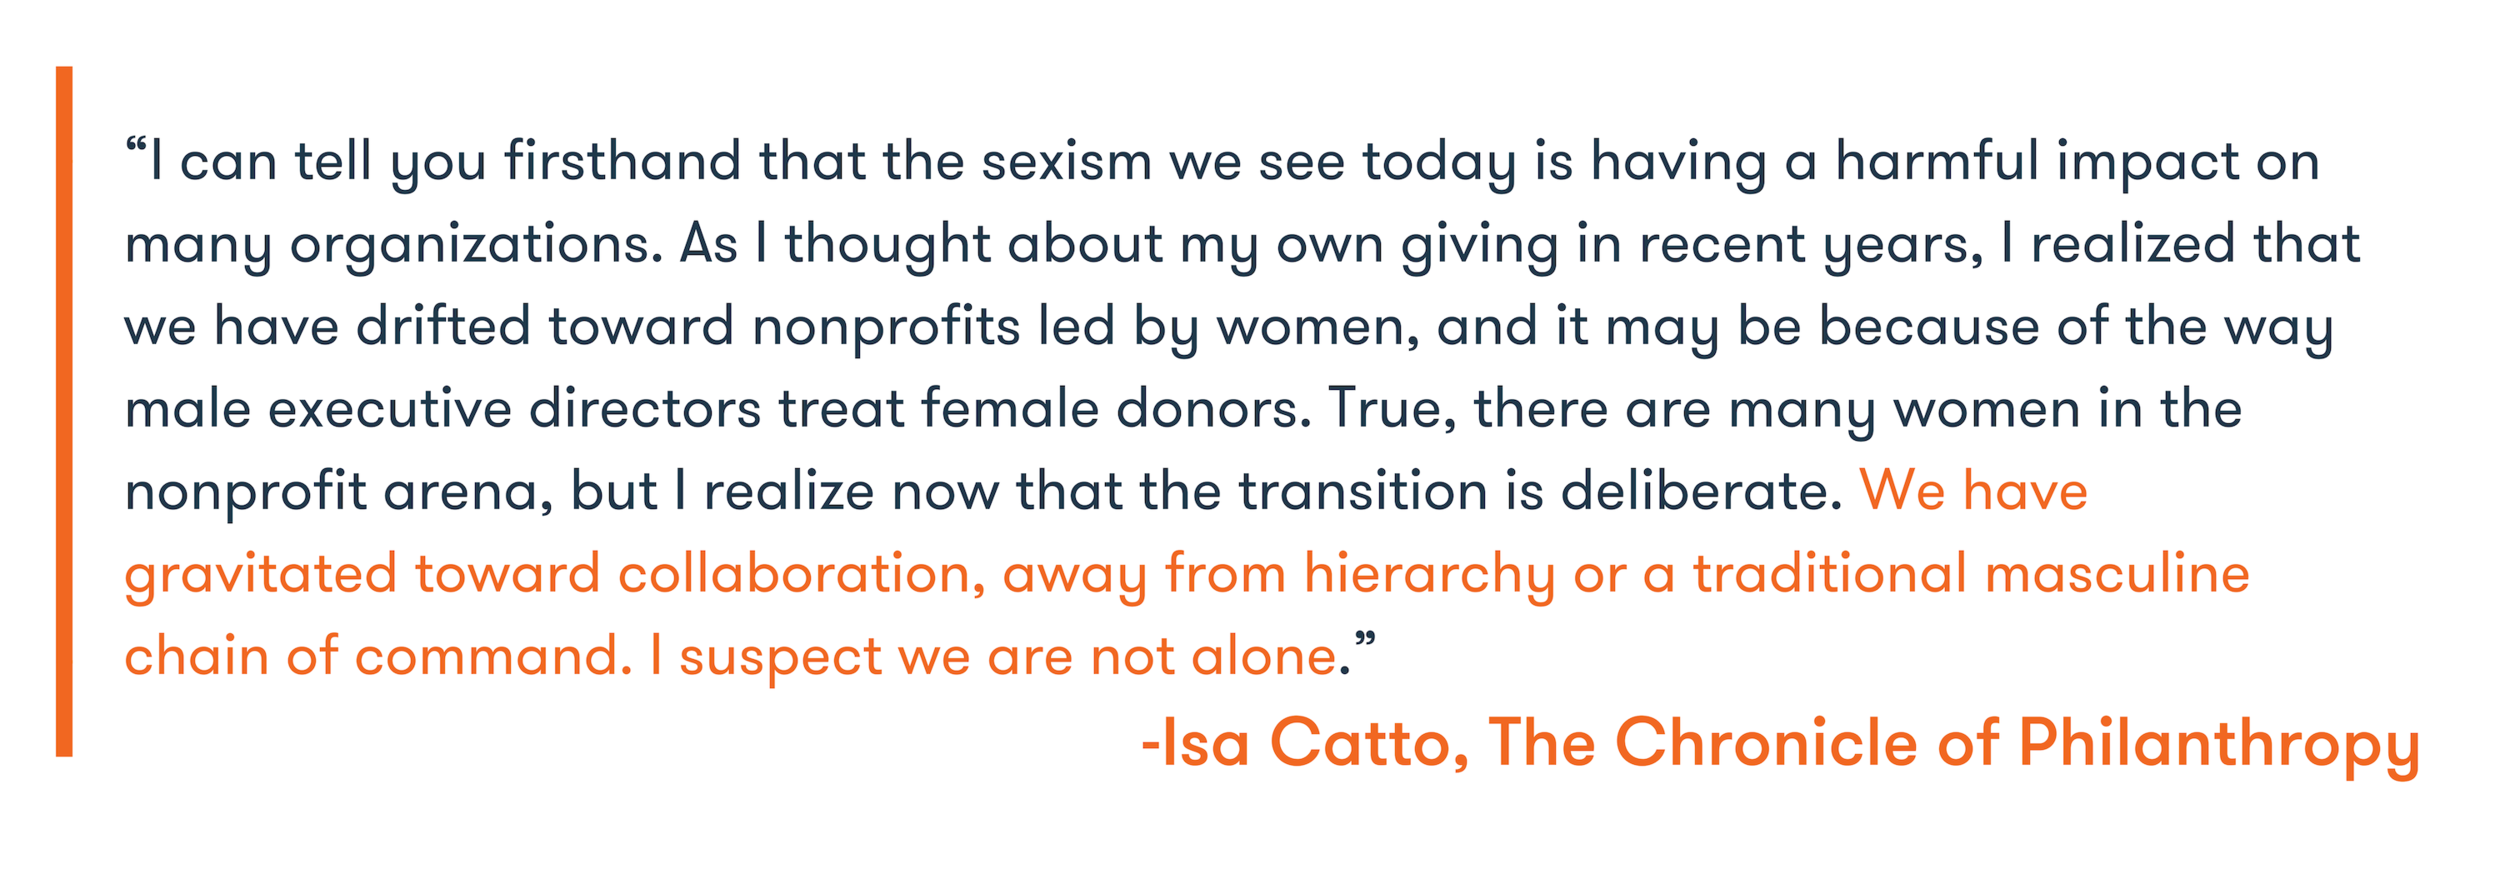 Source:  Chronicle of Philanthropy What It is Like to Experience Sexism as a Donor